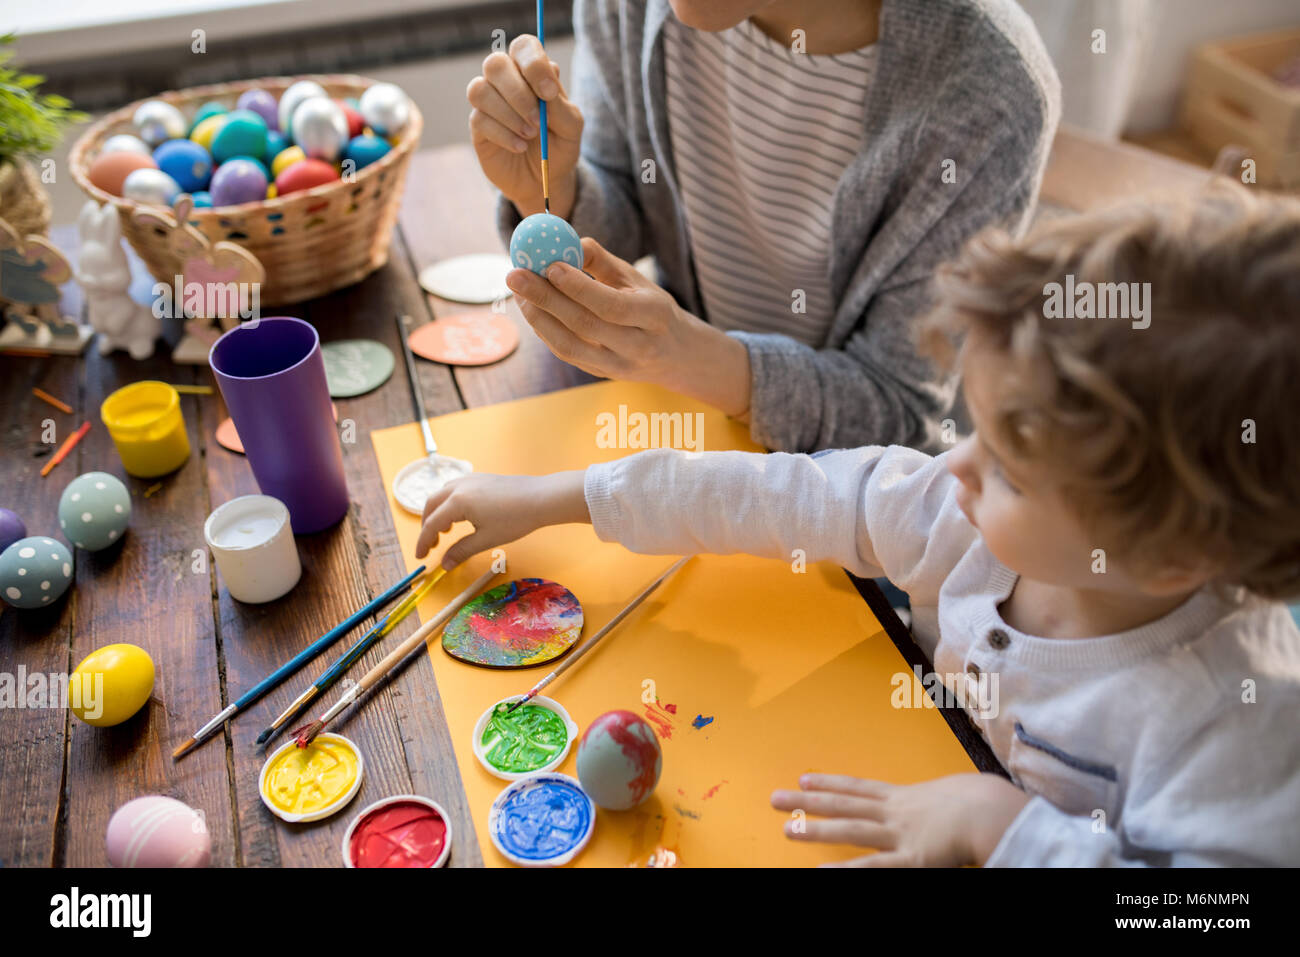 Family Painting Easter Eggs for Holiday - Stock Image